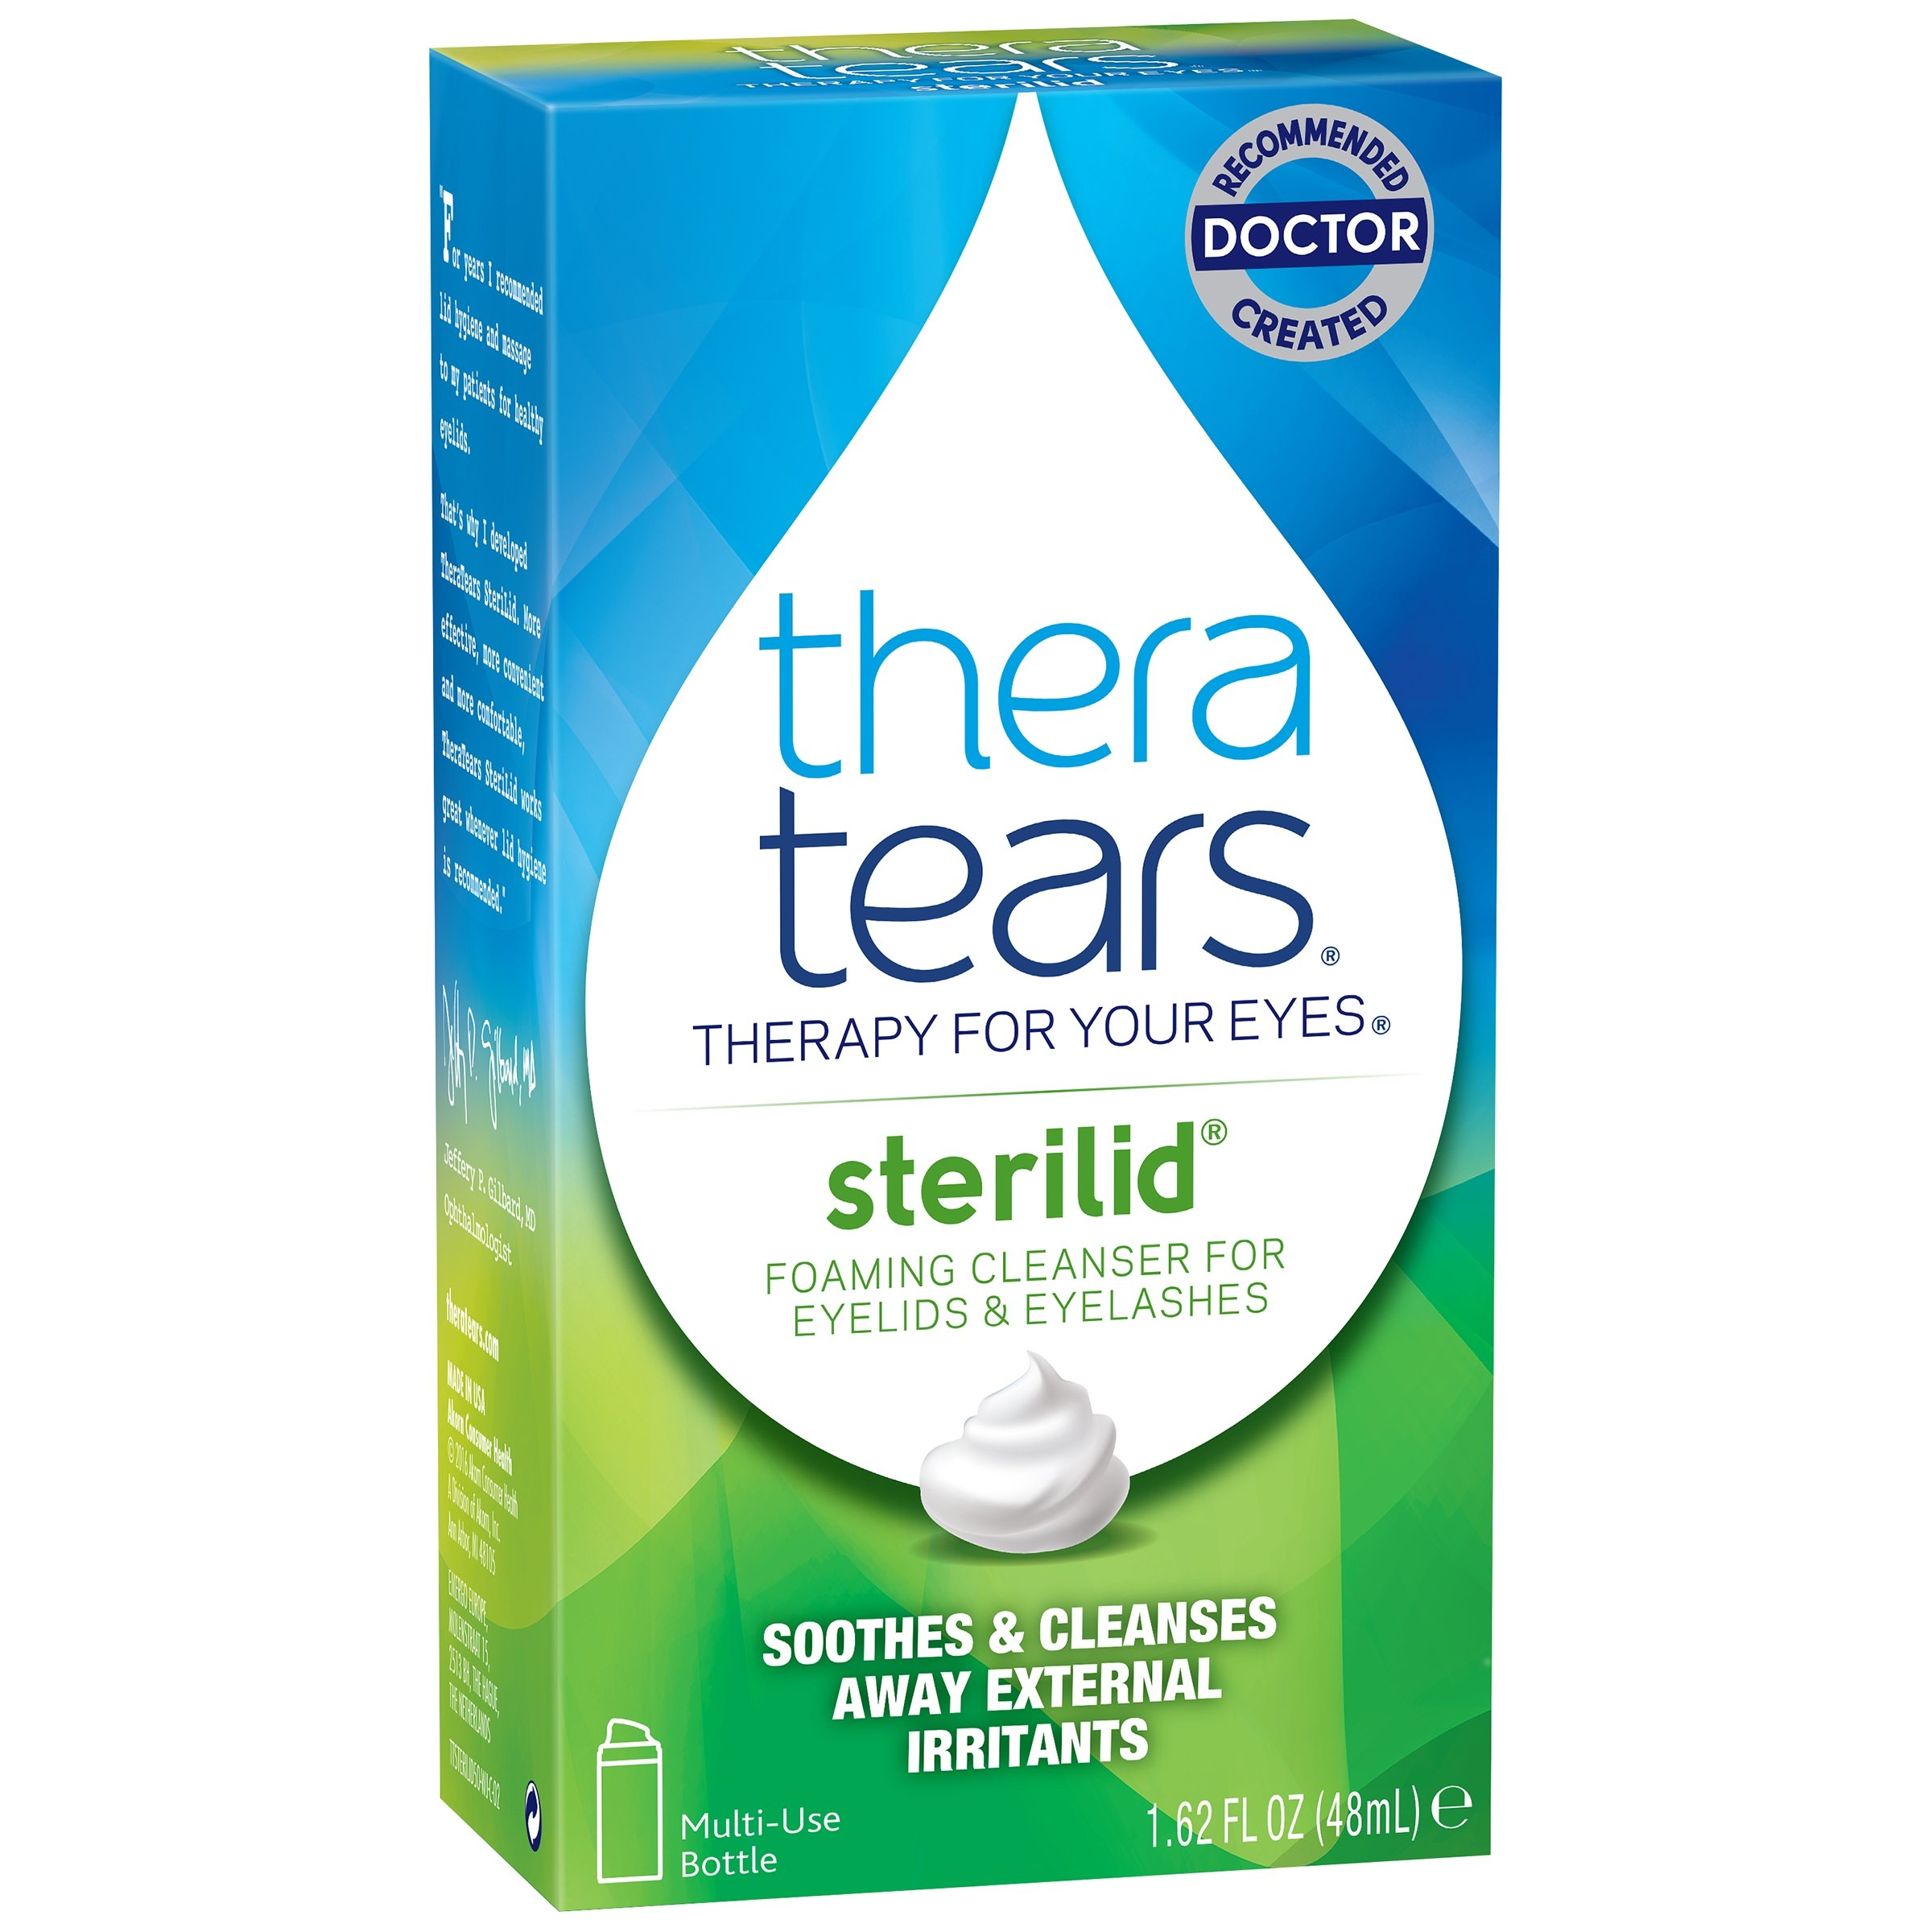 TheraTears Sterilid Eyelid Cleanser, Multi 4 Pack ( 6.48 FL OZ Total ) Thera-jS by Thera Tears